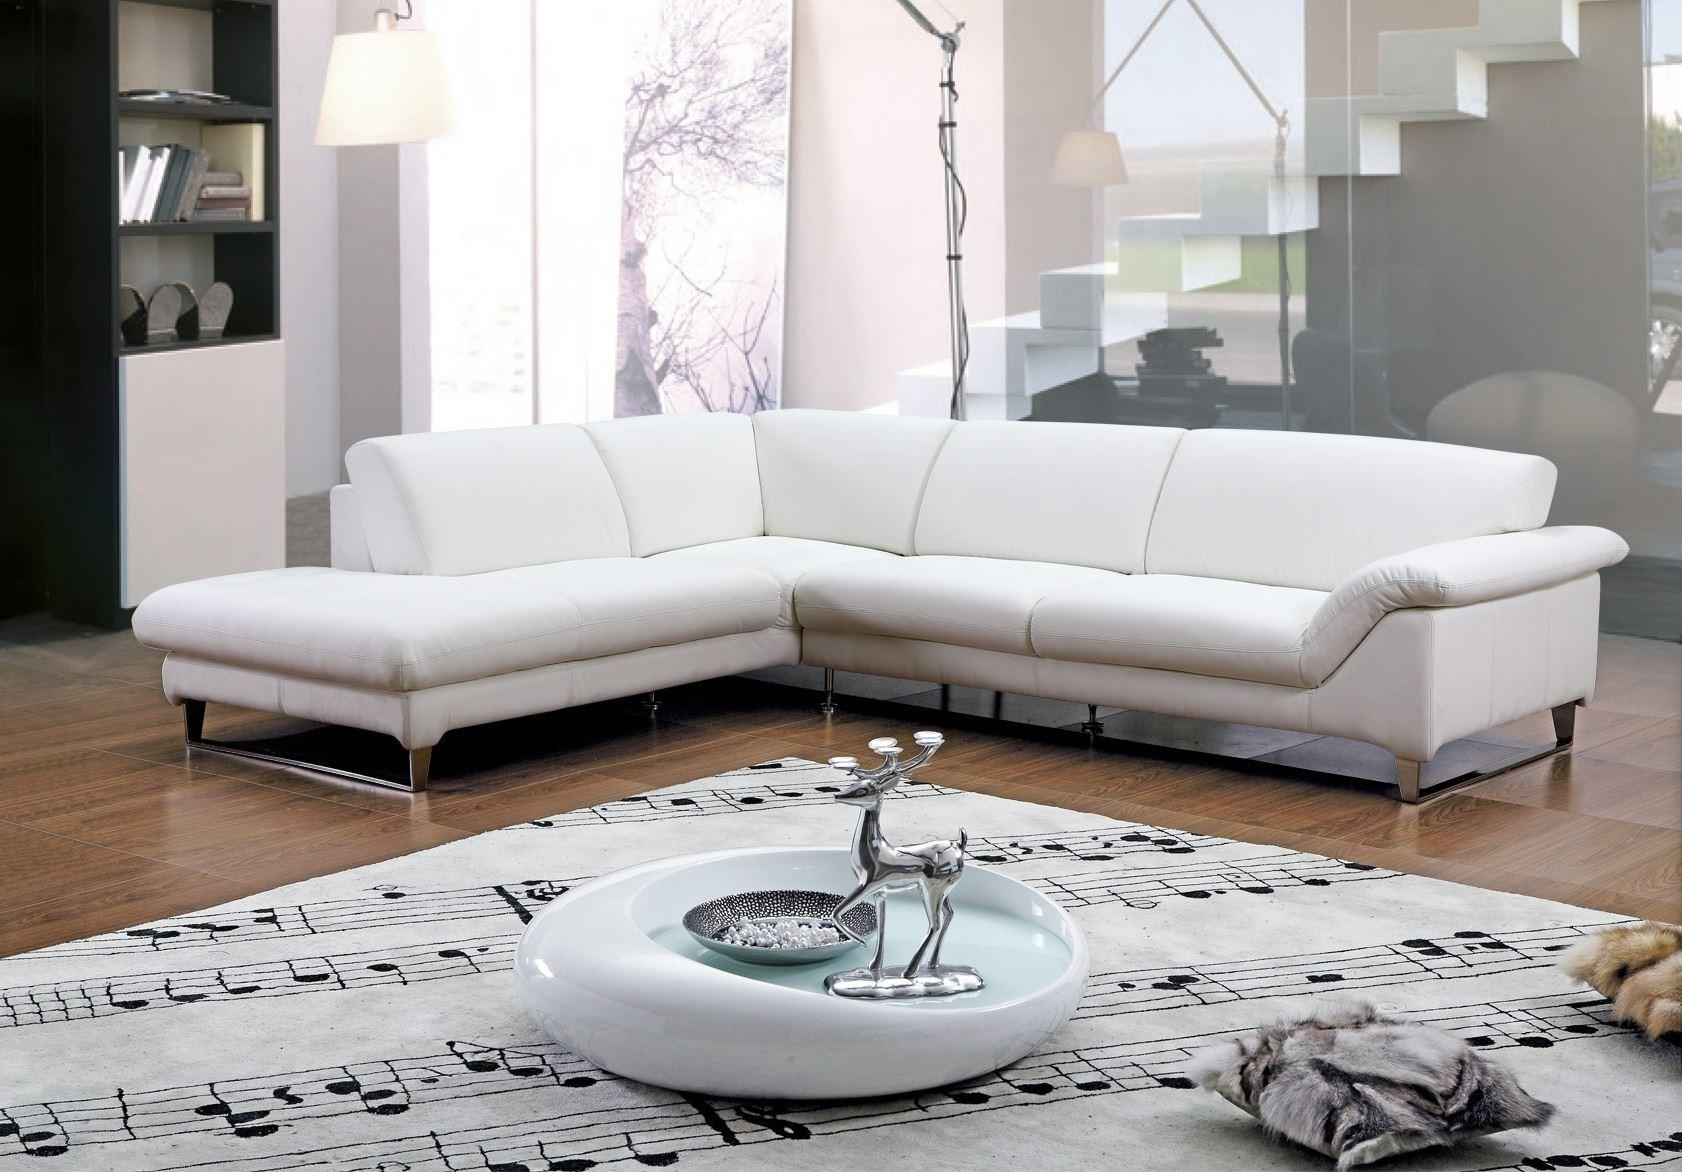 White Leather Sofa: A Good Furniture For Your Living Room 4229 Inside White Leather Sofas (View 18 of 20)